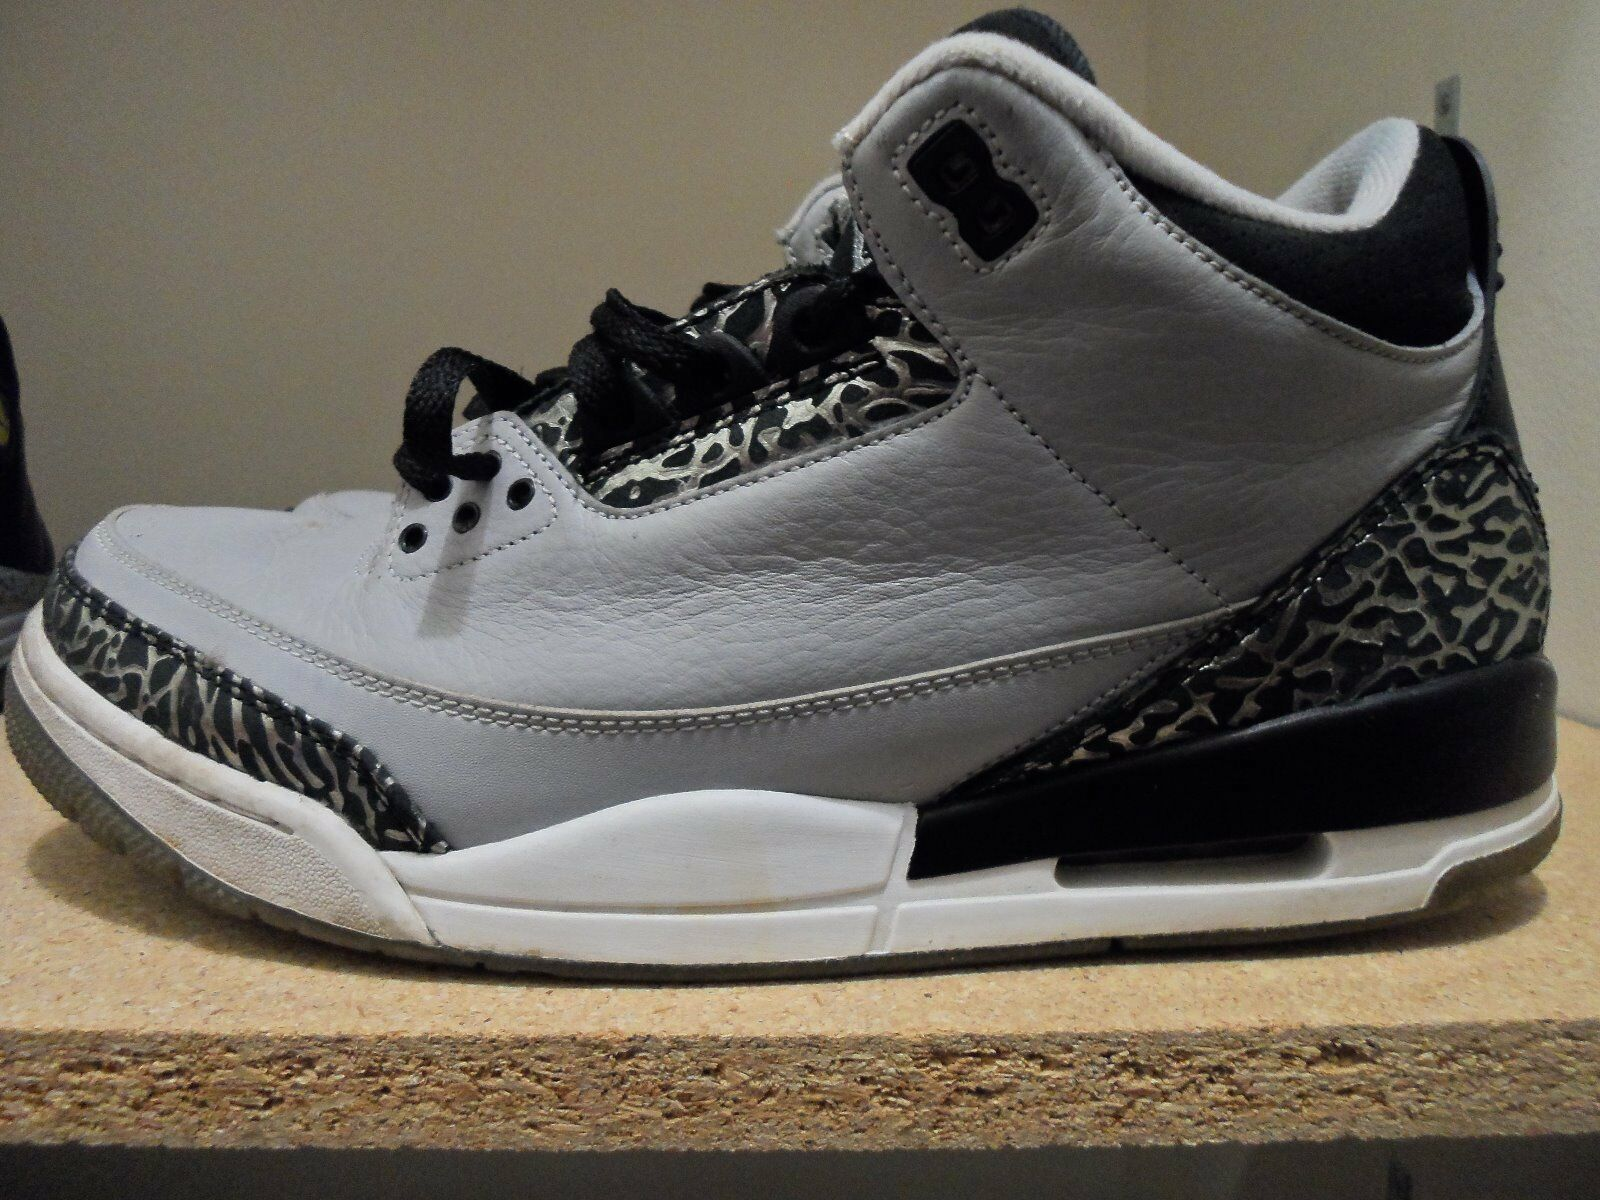 e47d499b70650 Nike Air Jordan Retro 3 III Wolfe Grey Black Men s Size Size Size 11.5  ce9410